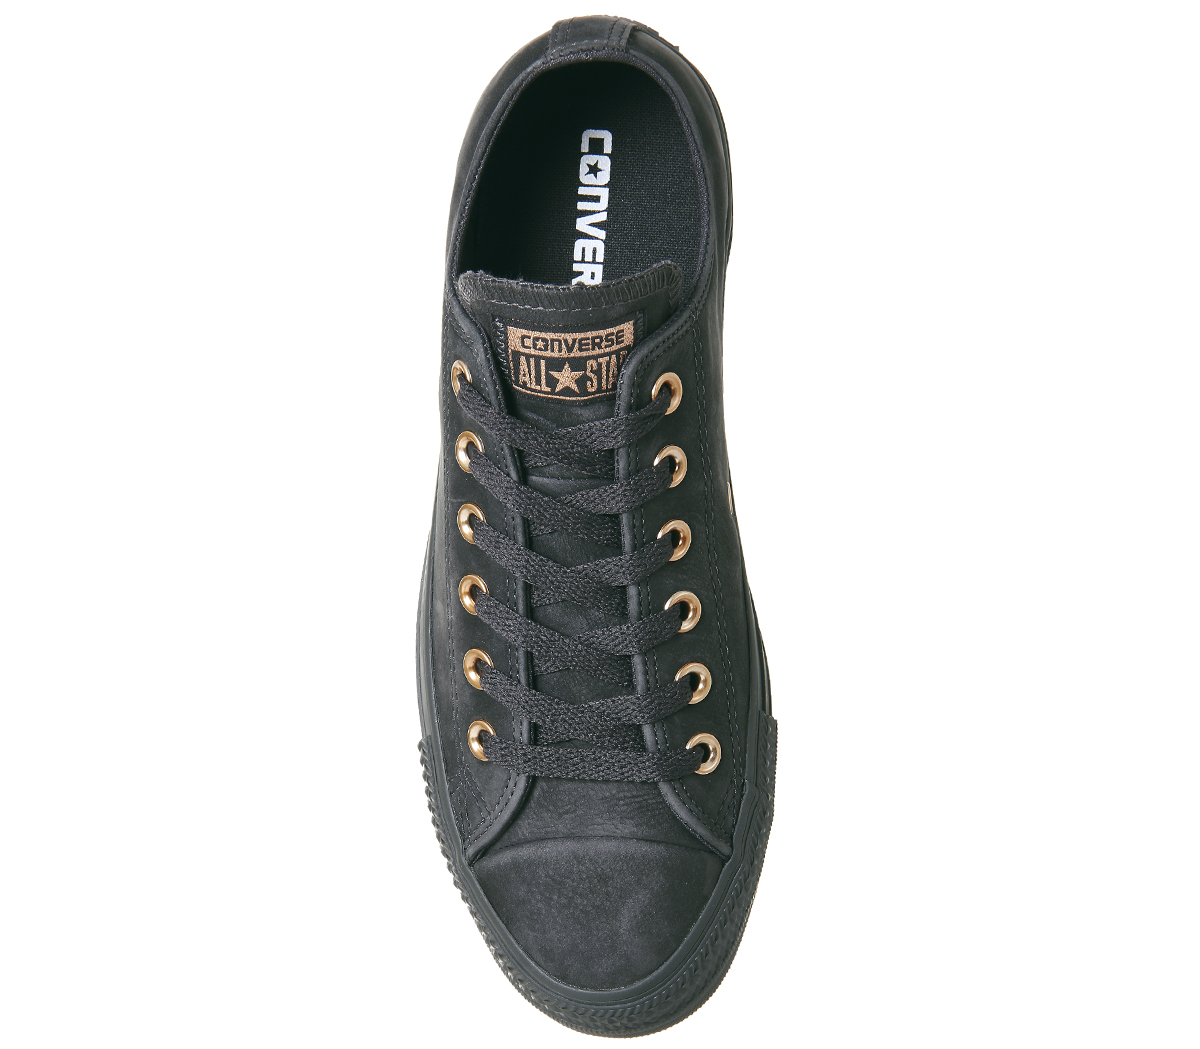 b34fc6f1f9a0ae Sentinel Womens Converse All Star Low Leather ALMOST BLACK ROSE GOLD  Trainers Shoes